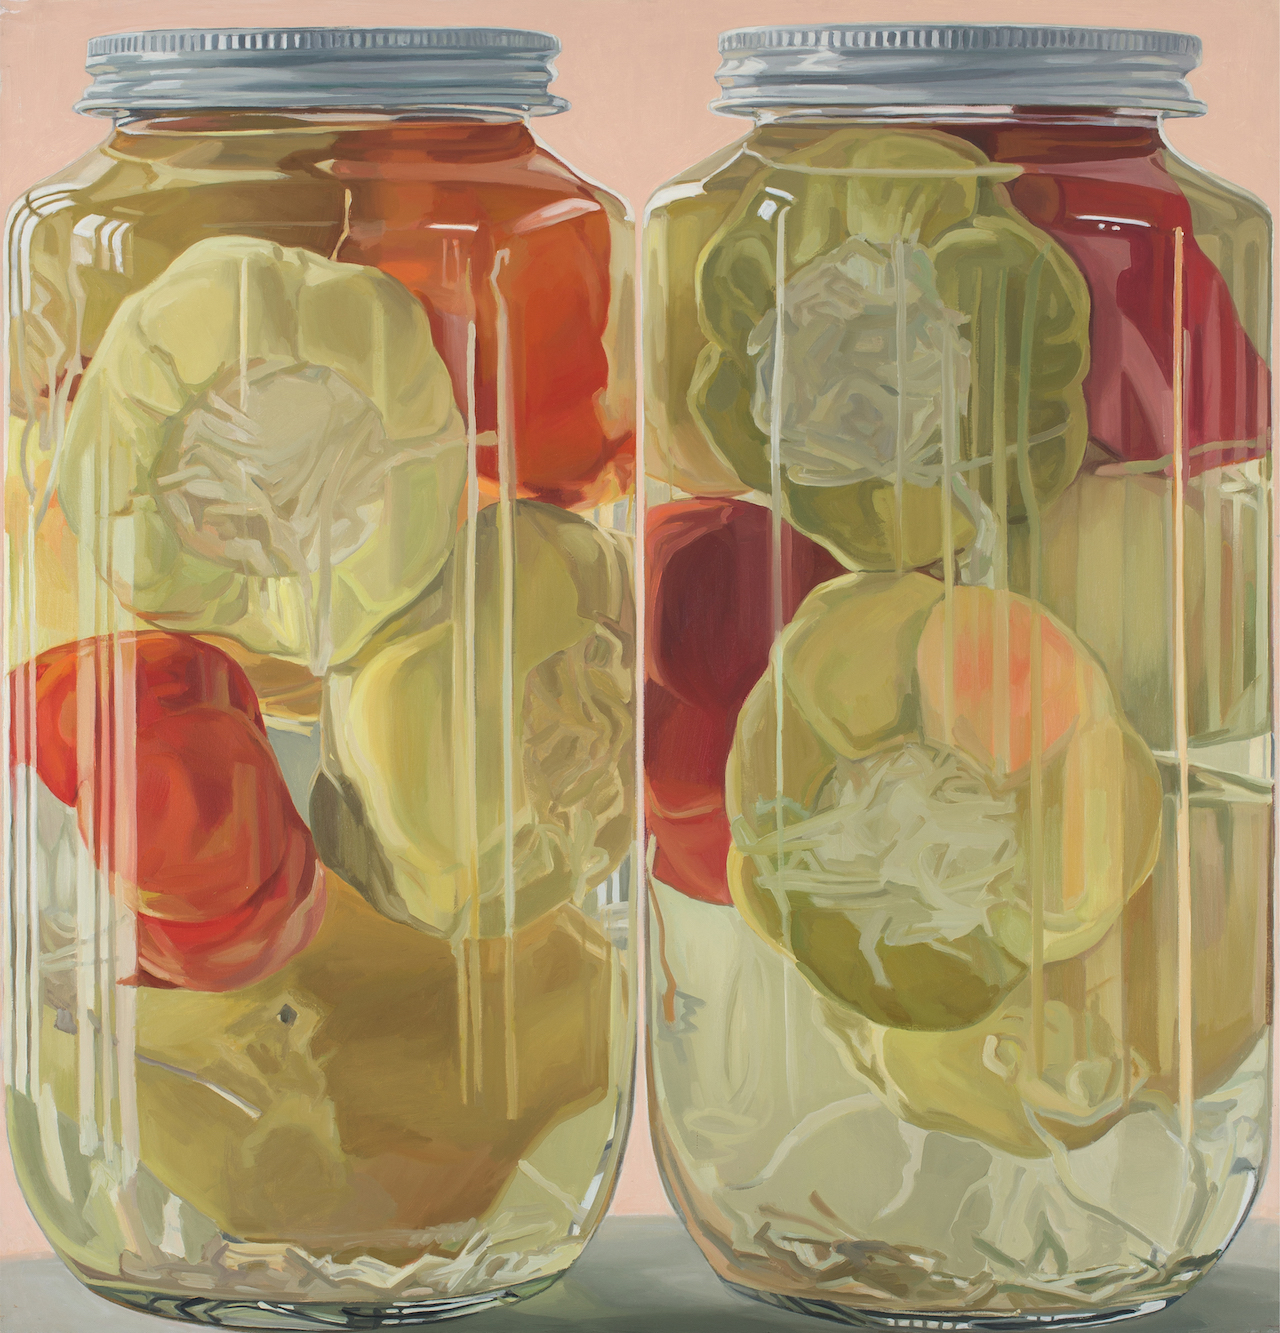 """Janet Fish, """"Stuffed Peppers"""" (1970), oil on canvas, 59 x 57 in"""